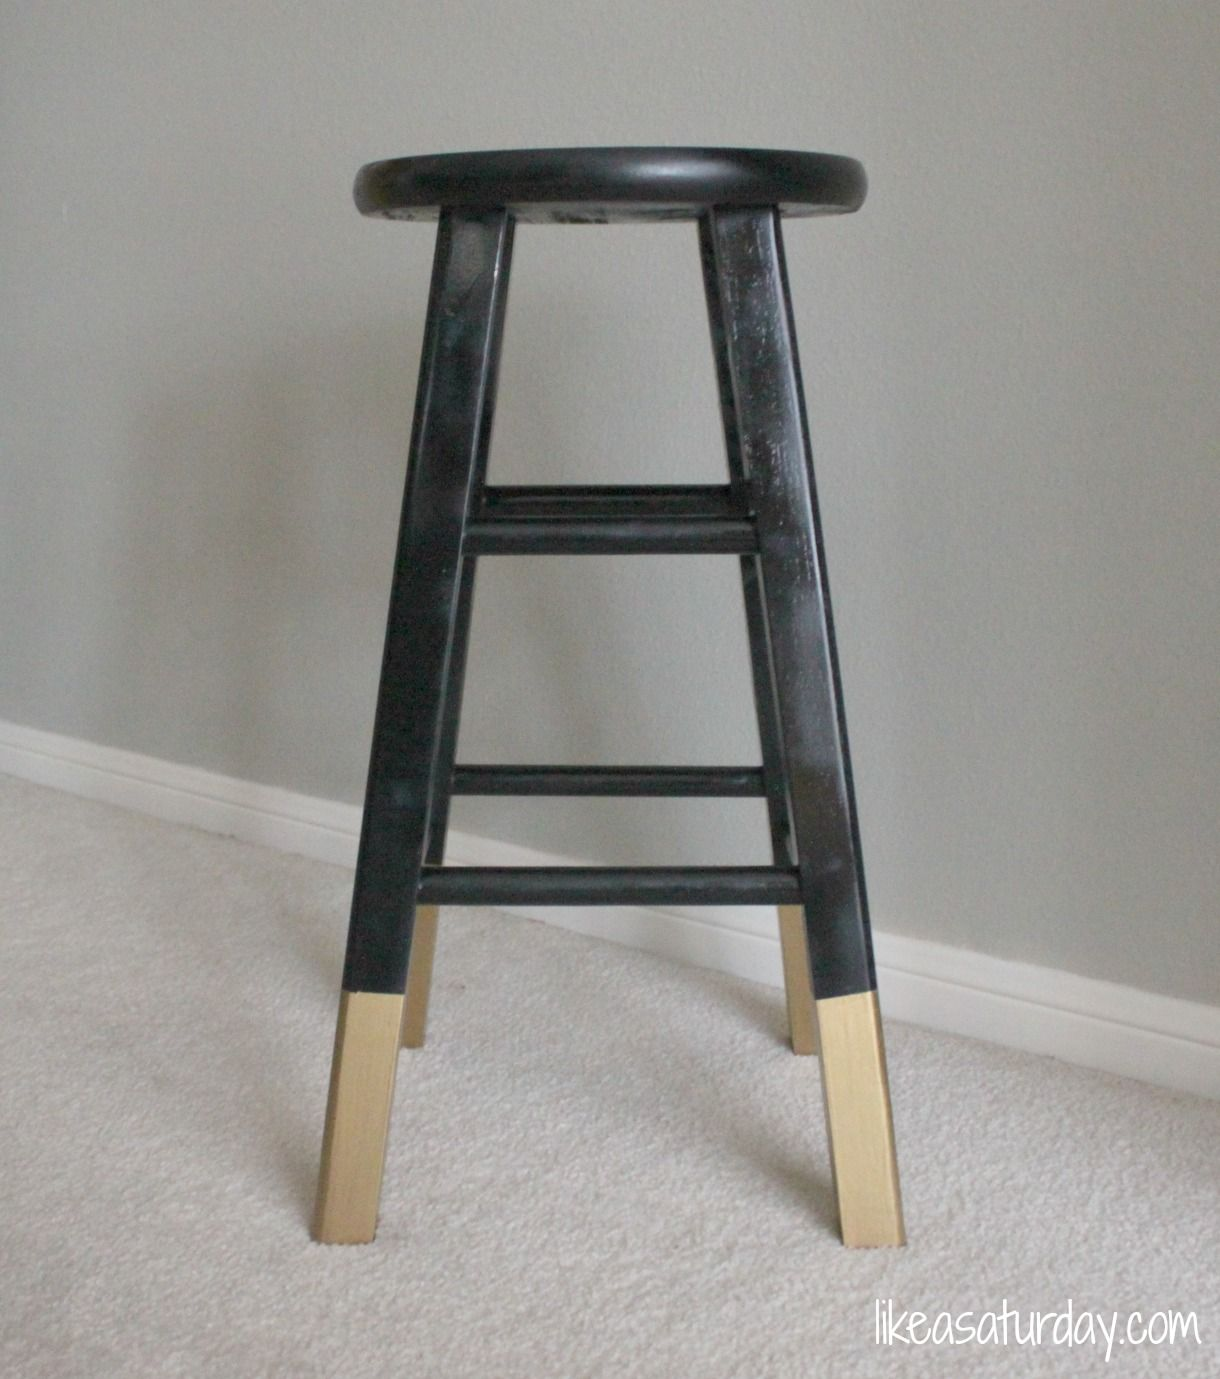 Dipped Furniture Legs: Gold Dipped Bar Stools : Like A Saturday